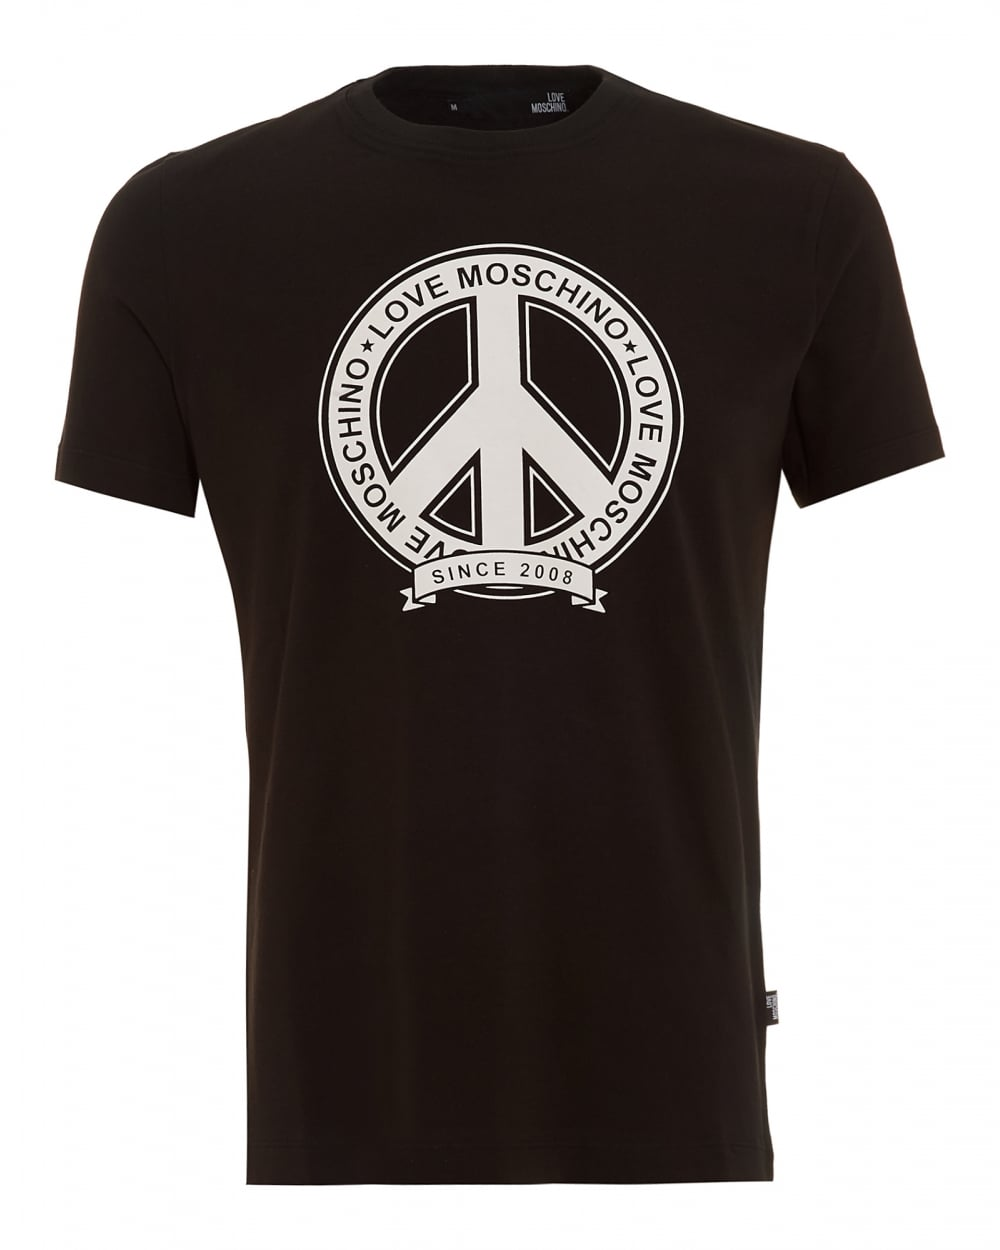 love moschino mens t shirt black peace logo. Black Bedroom Furniture Sets. Home Design Ideas